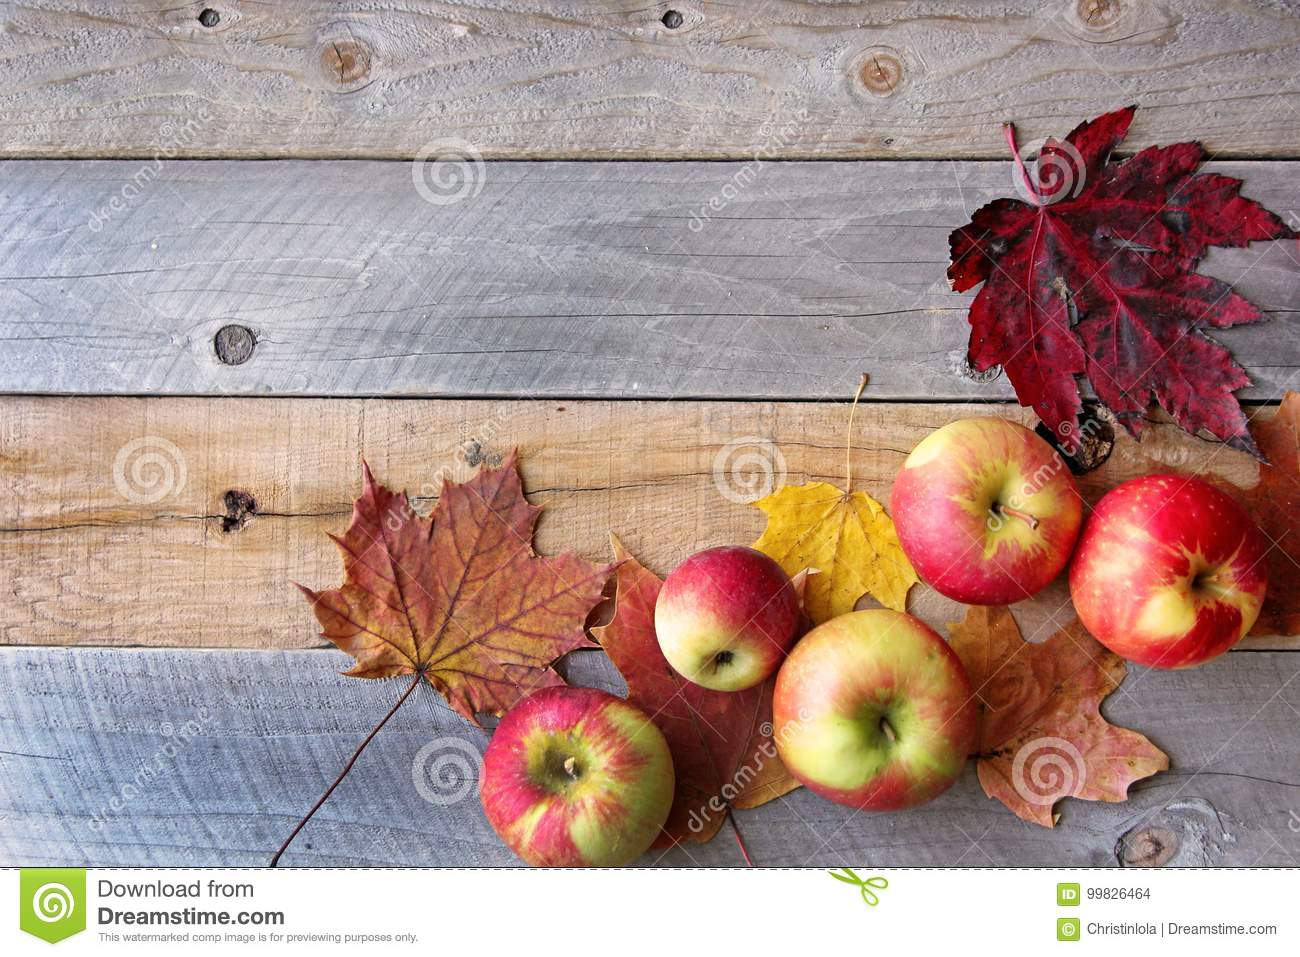 Rustic Fall Decor Of Maple Leaves And Apples Frame A Weathered W